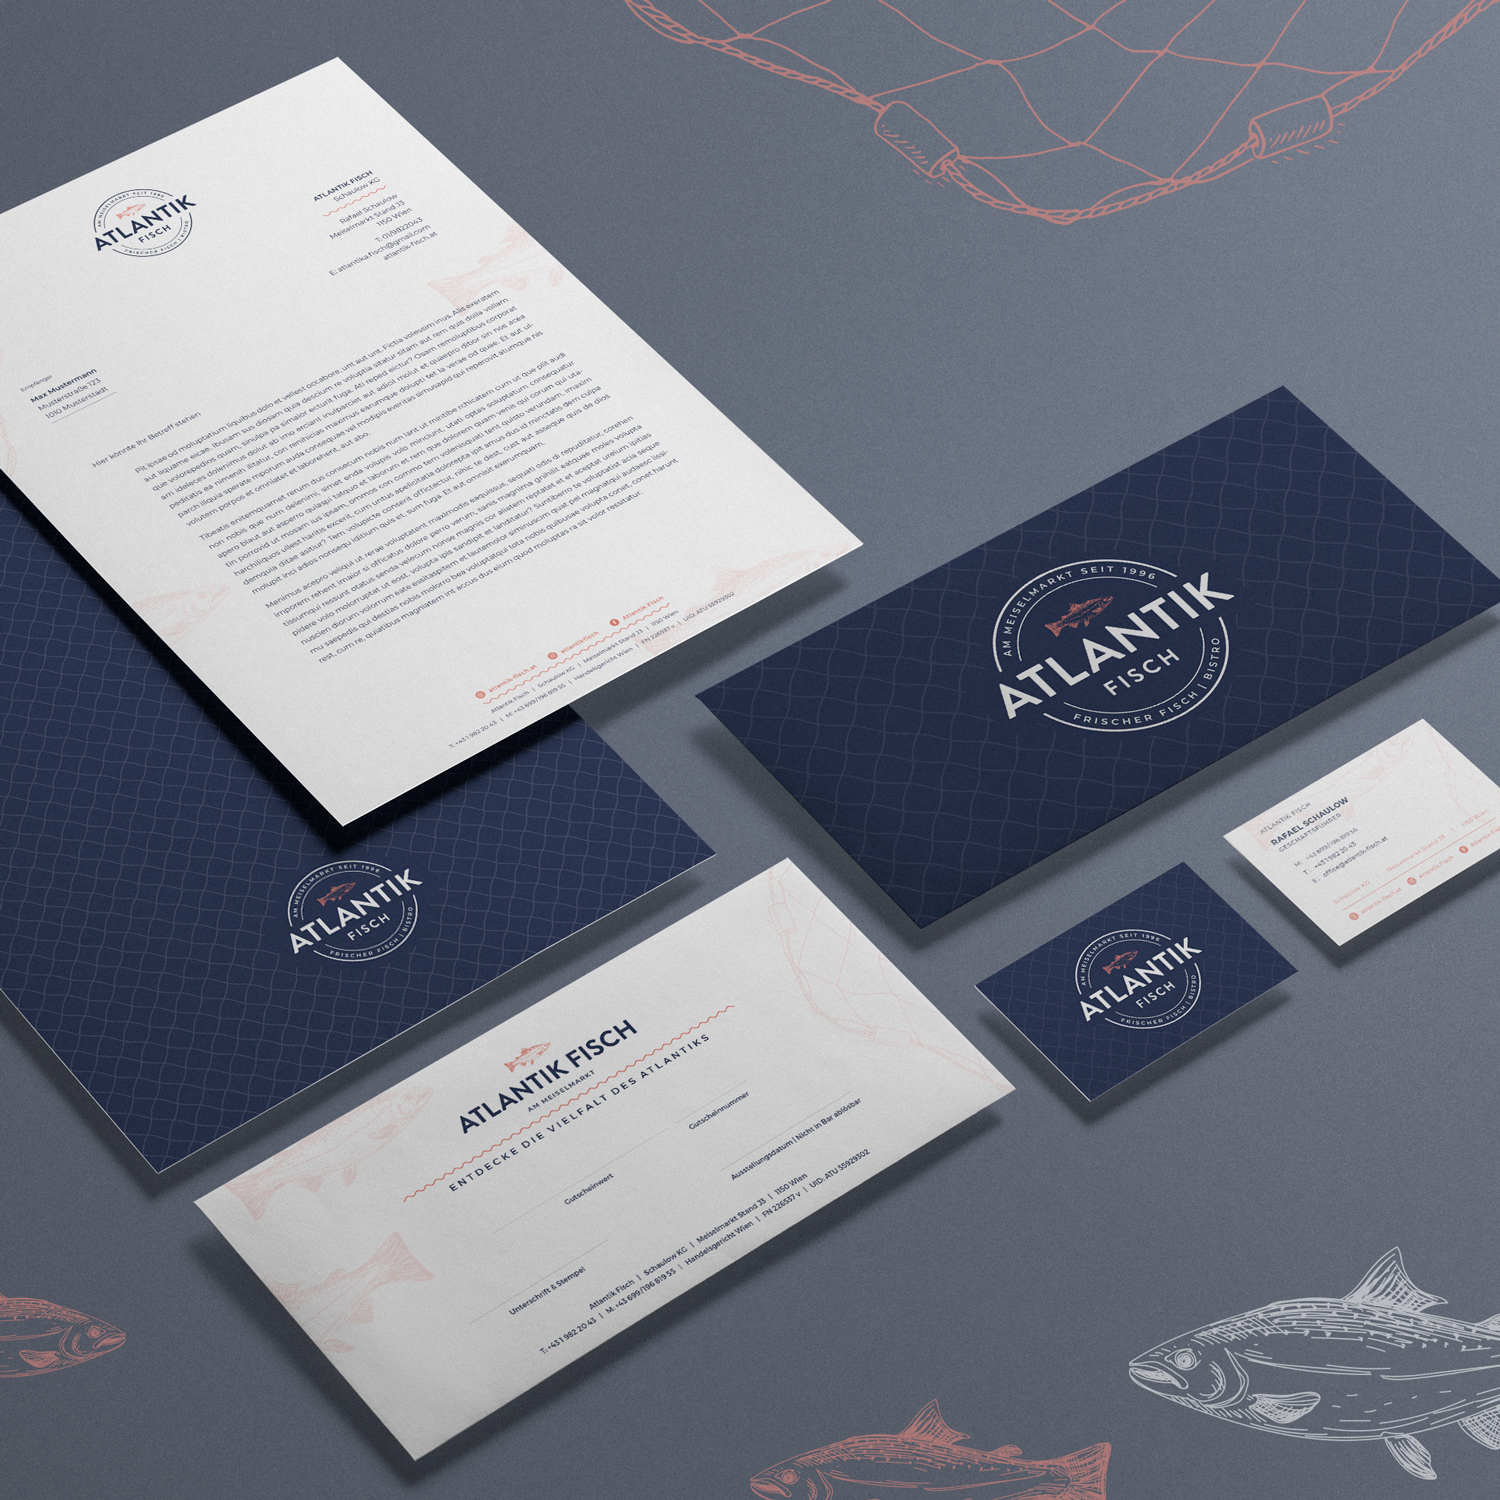 AtlantikFisch-Stationary-Mockup-01